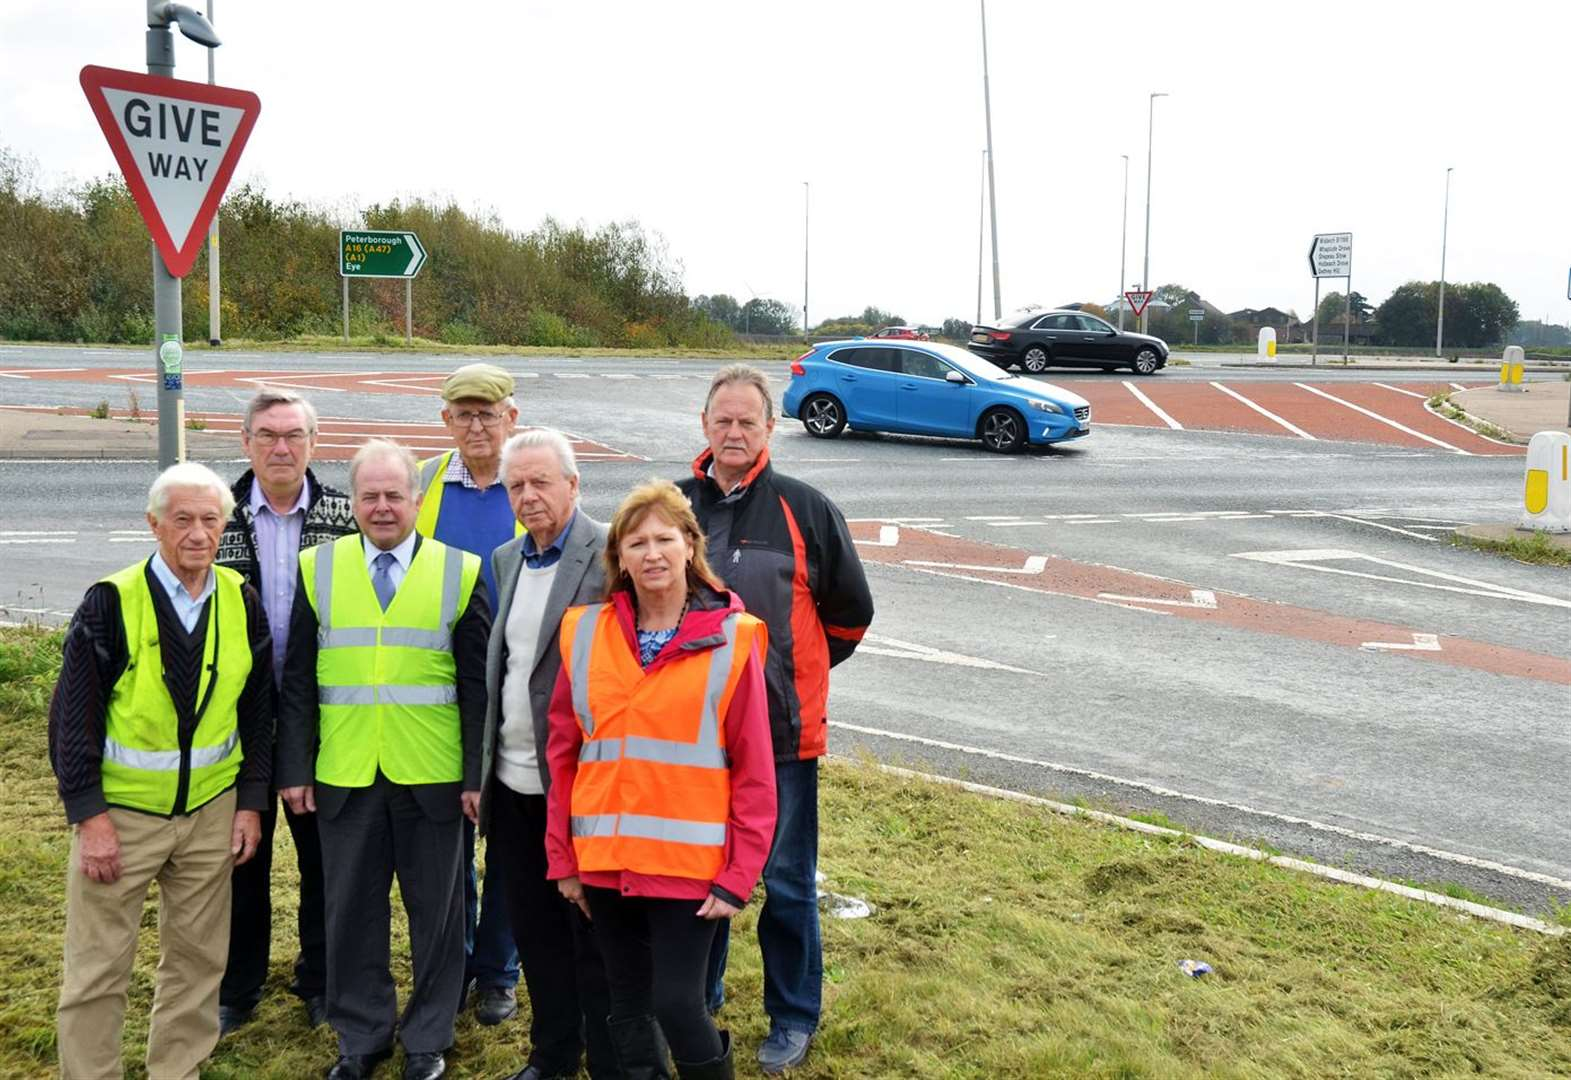 Opposition to plans for Radar Junction from town leaders